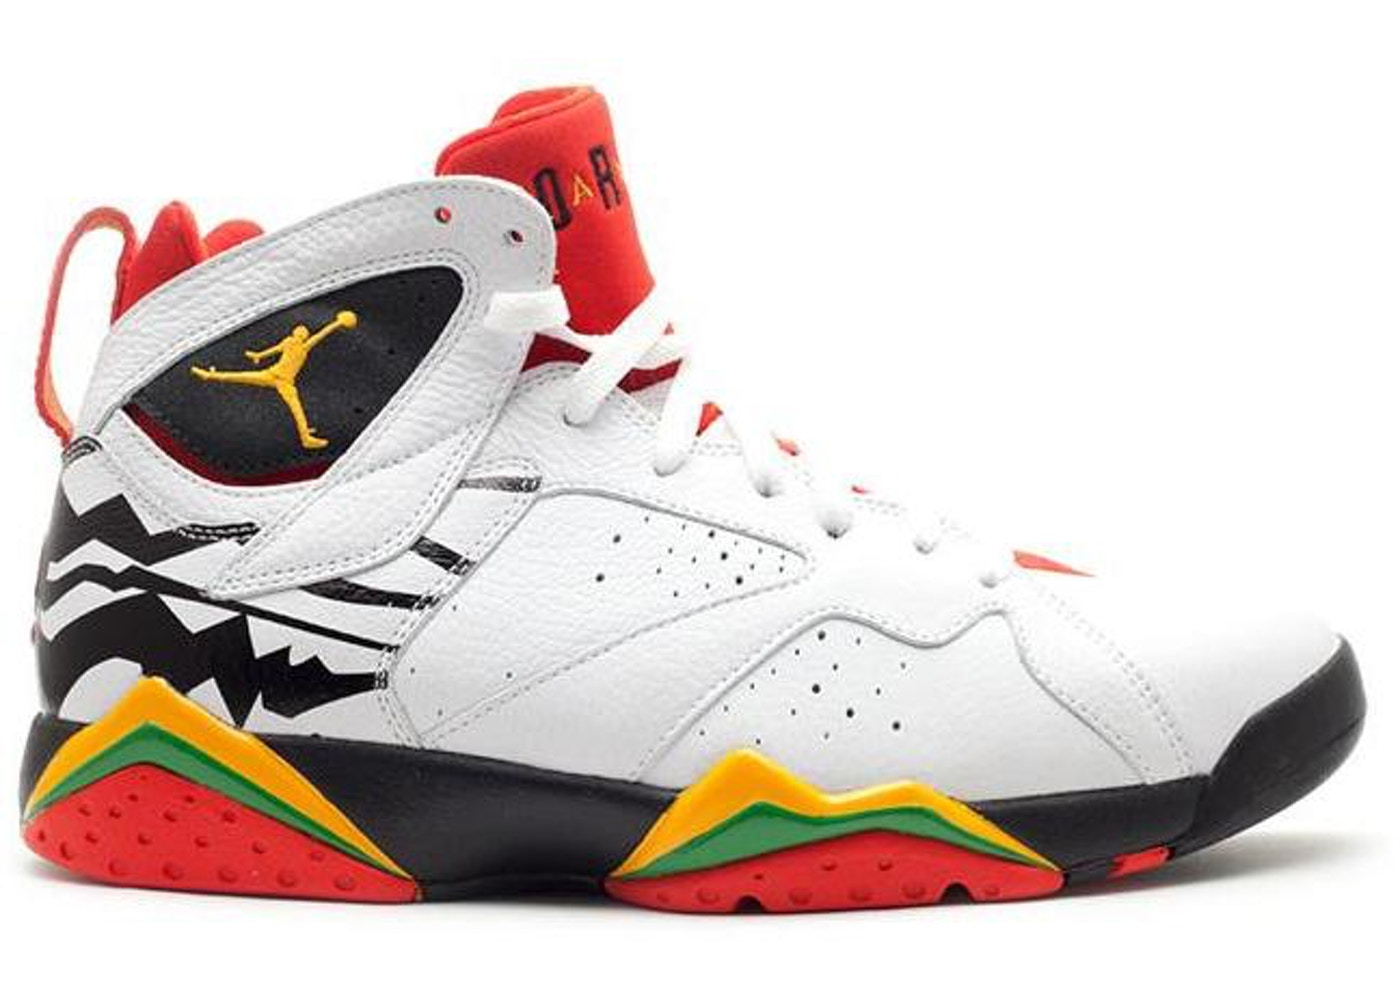 competitive price 2a196 2b6fc Jordan 7 Retro Premio Bin 23 - 436206-101